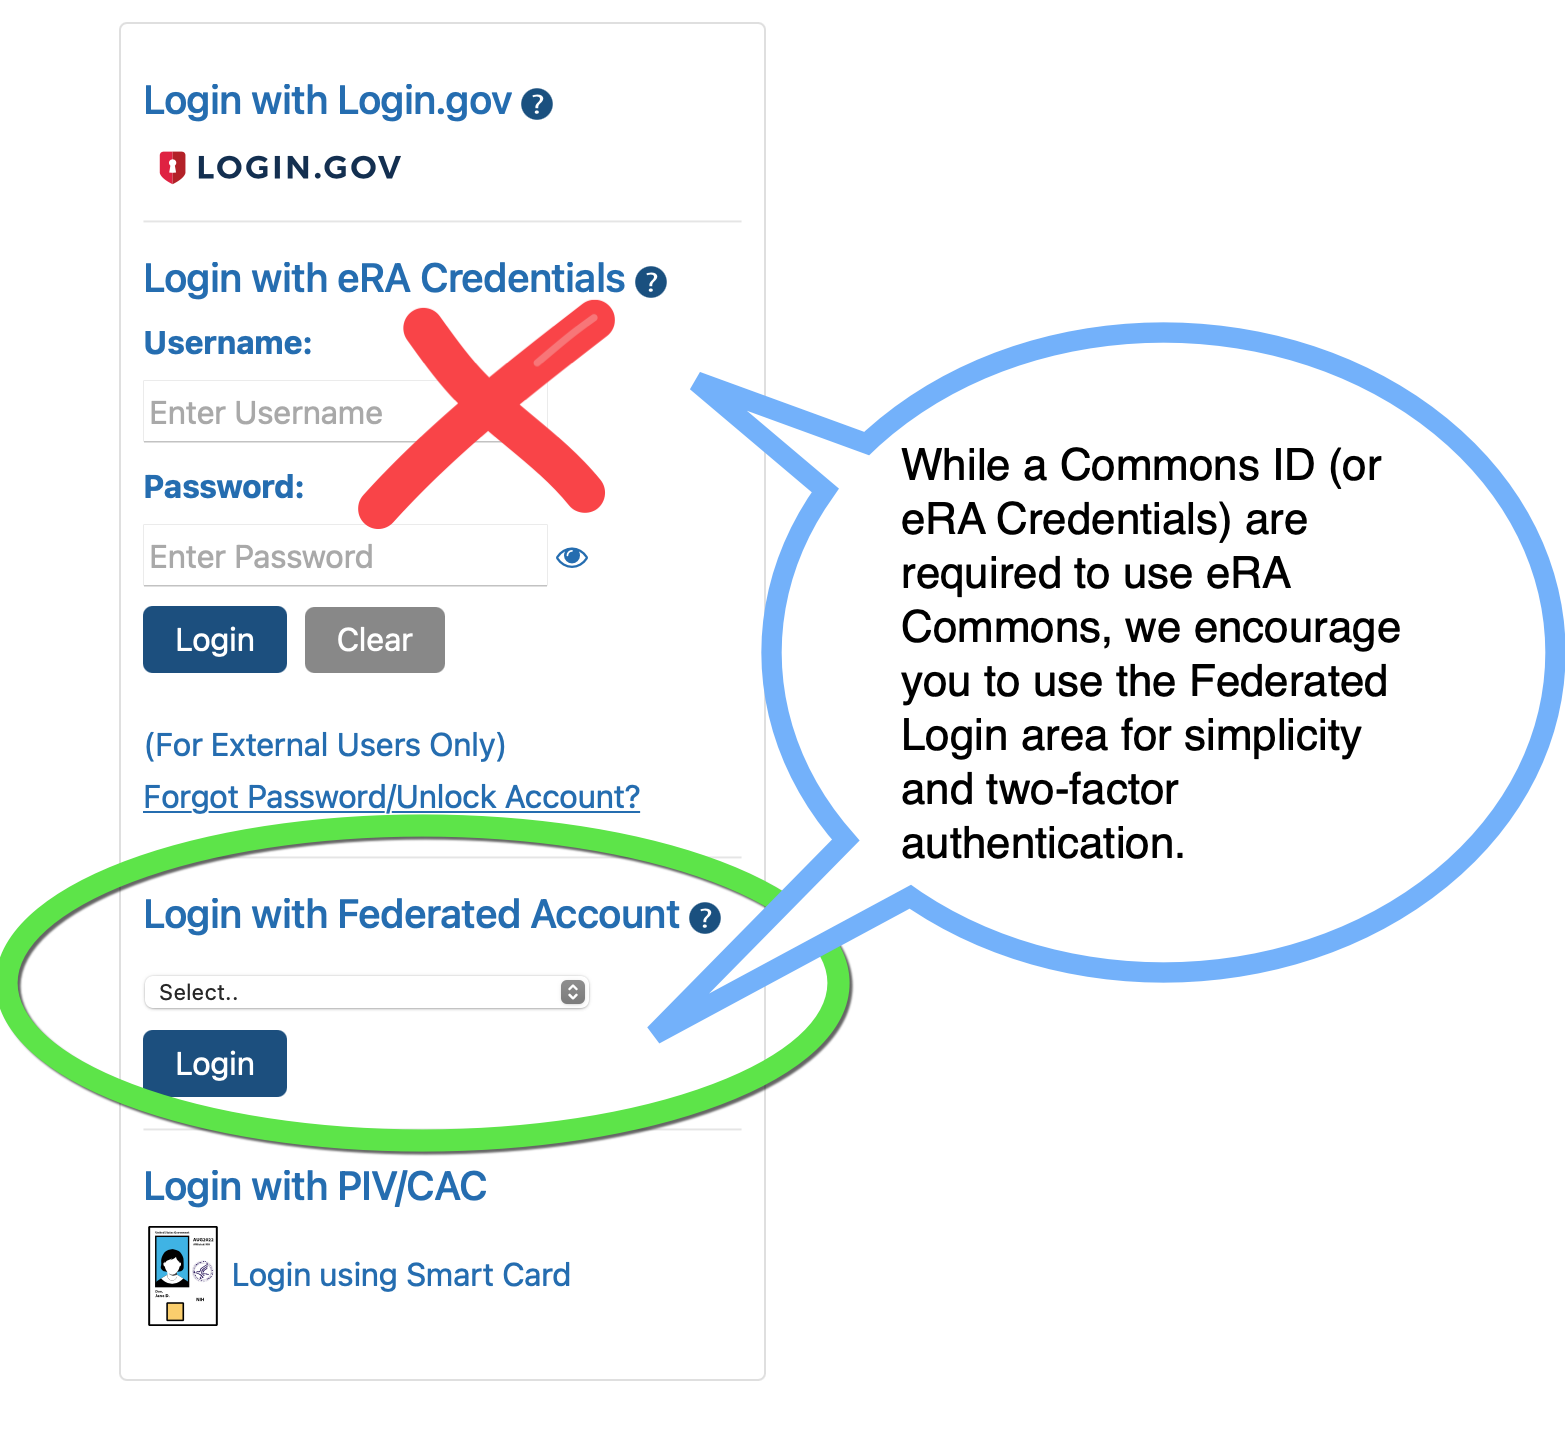 Using your Federated Login is Preferred over Logging in with eRA Credentials